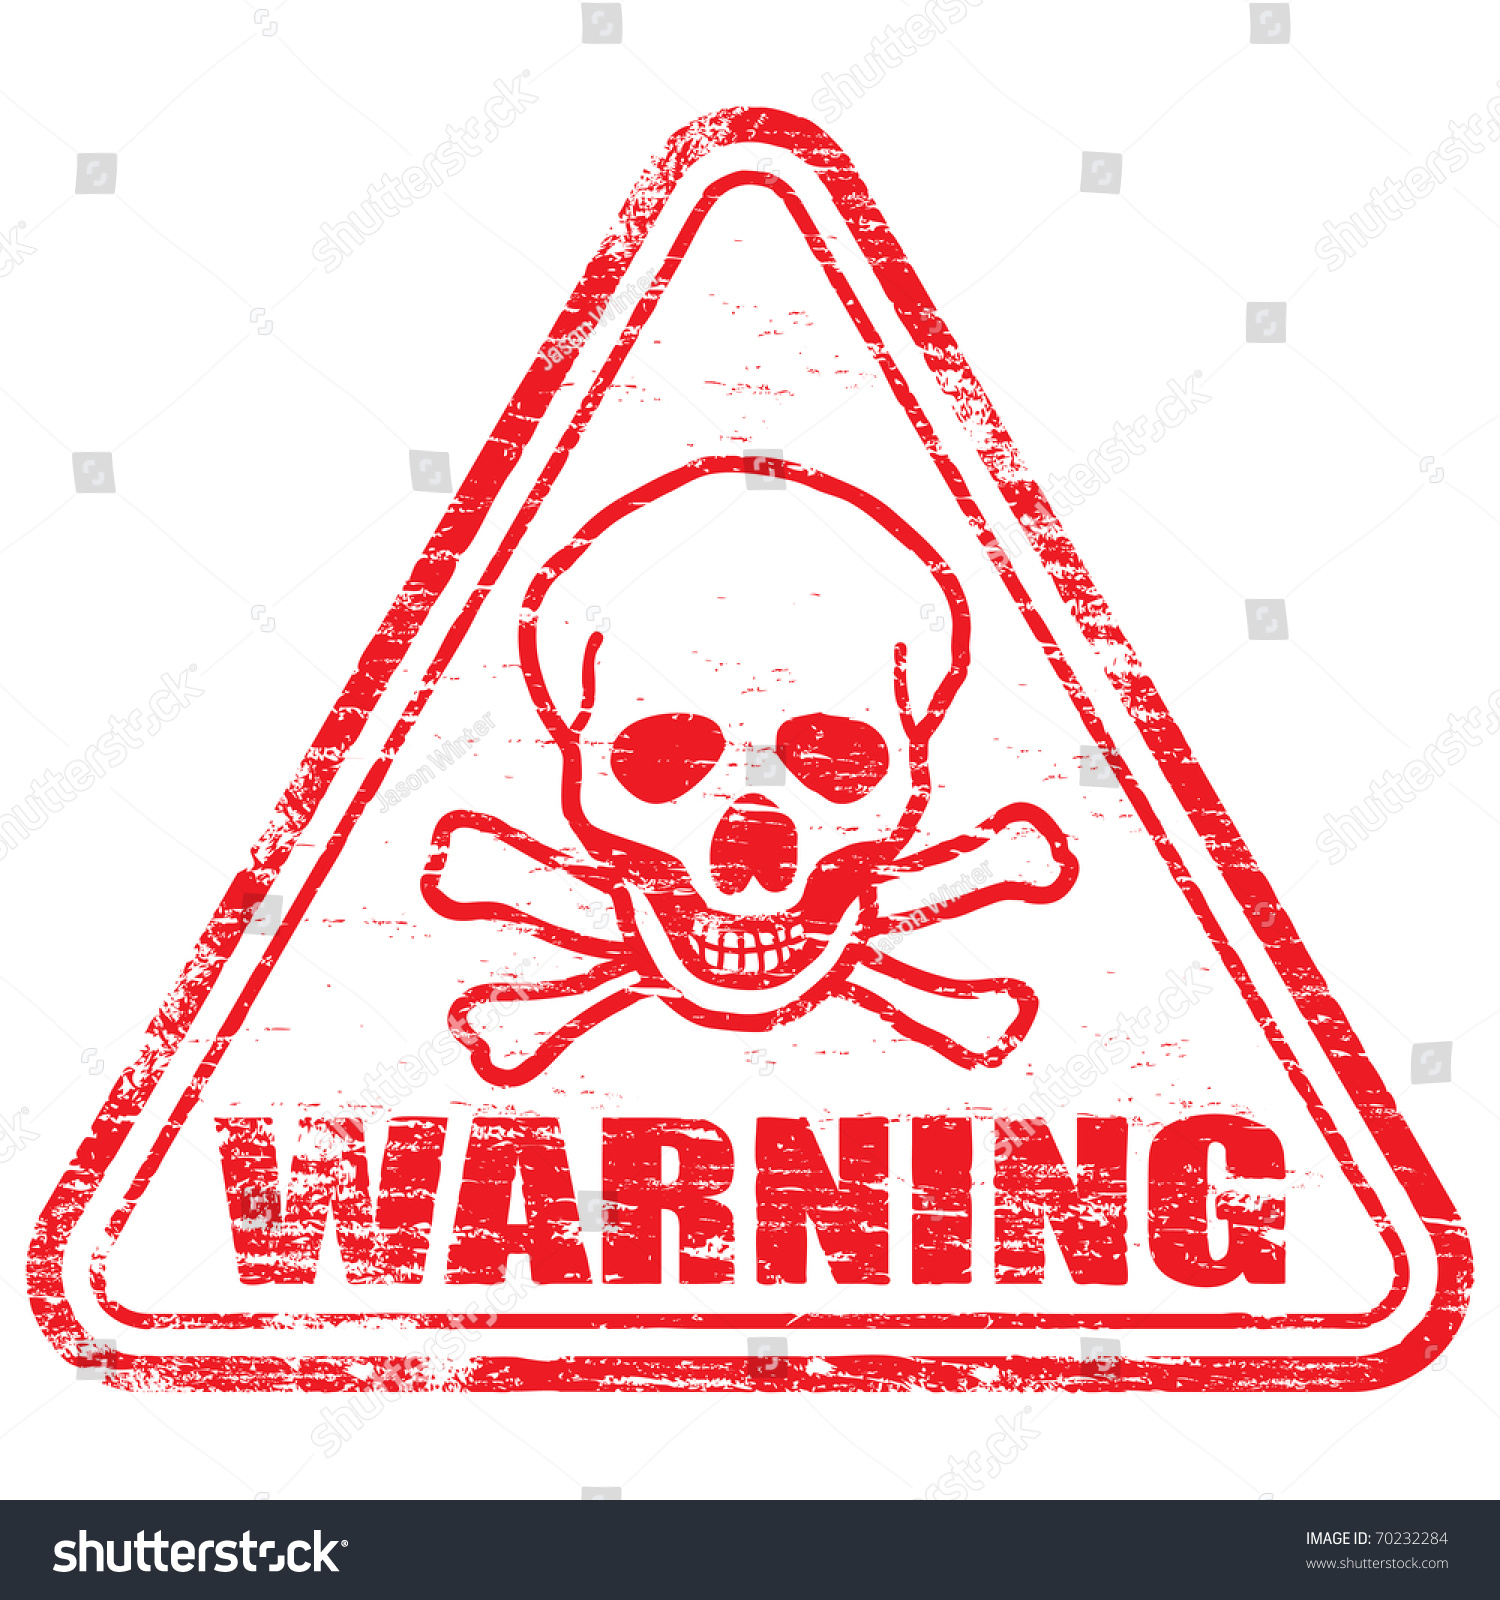 Rubber stamp illustration showing warning text stock illustration rubber stamp illustration showing warning text and skull bones symbol buycottarizona Images